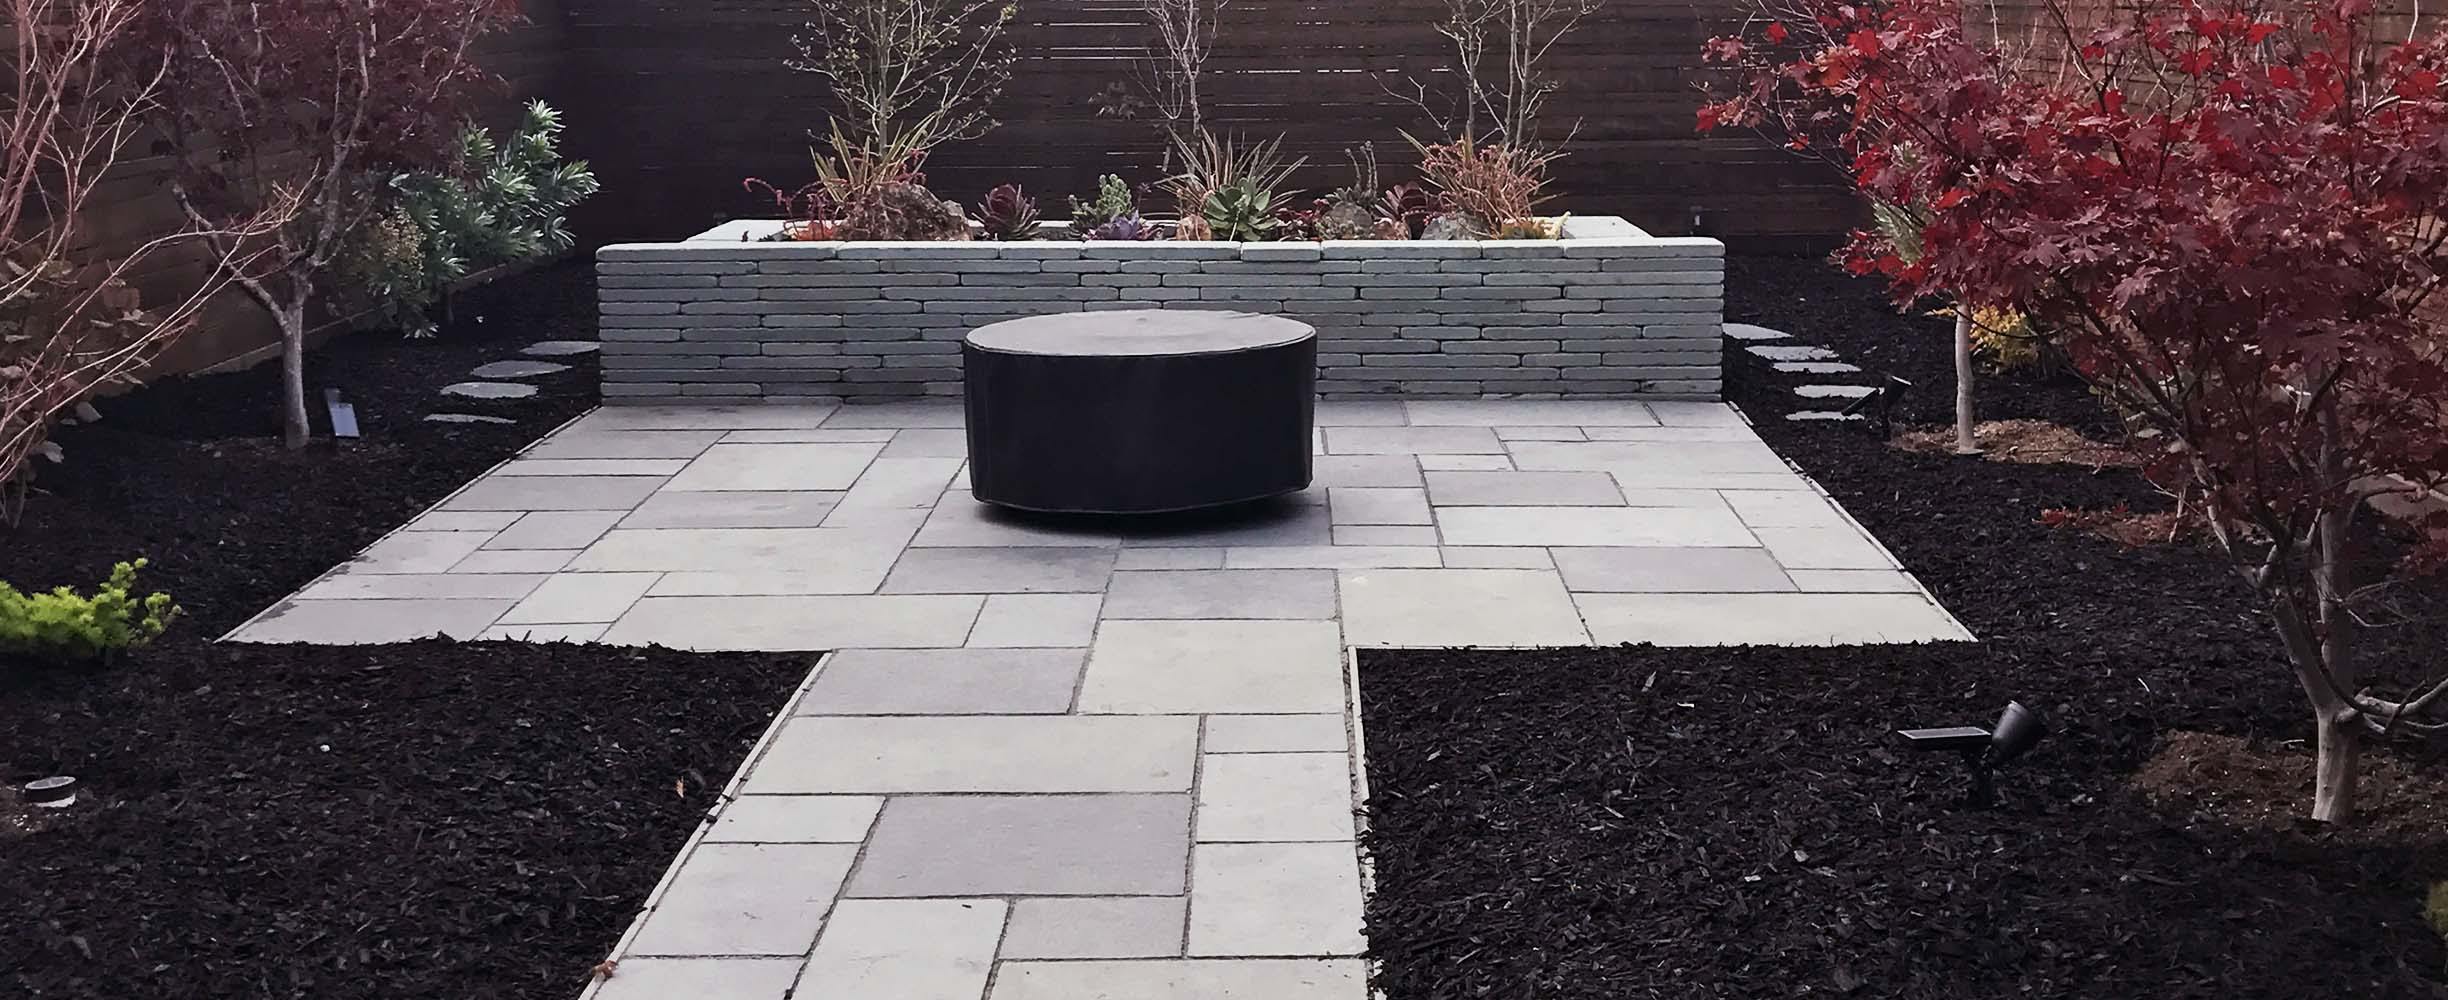 landscaping project in San francisco with stones path and a stone water fountain feature.